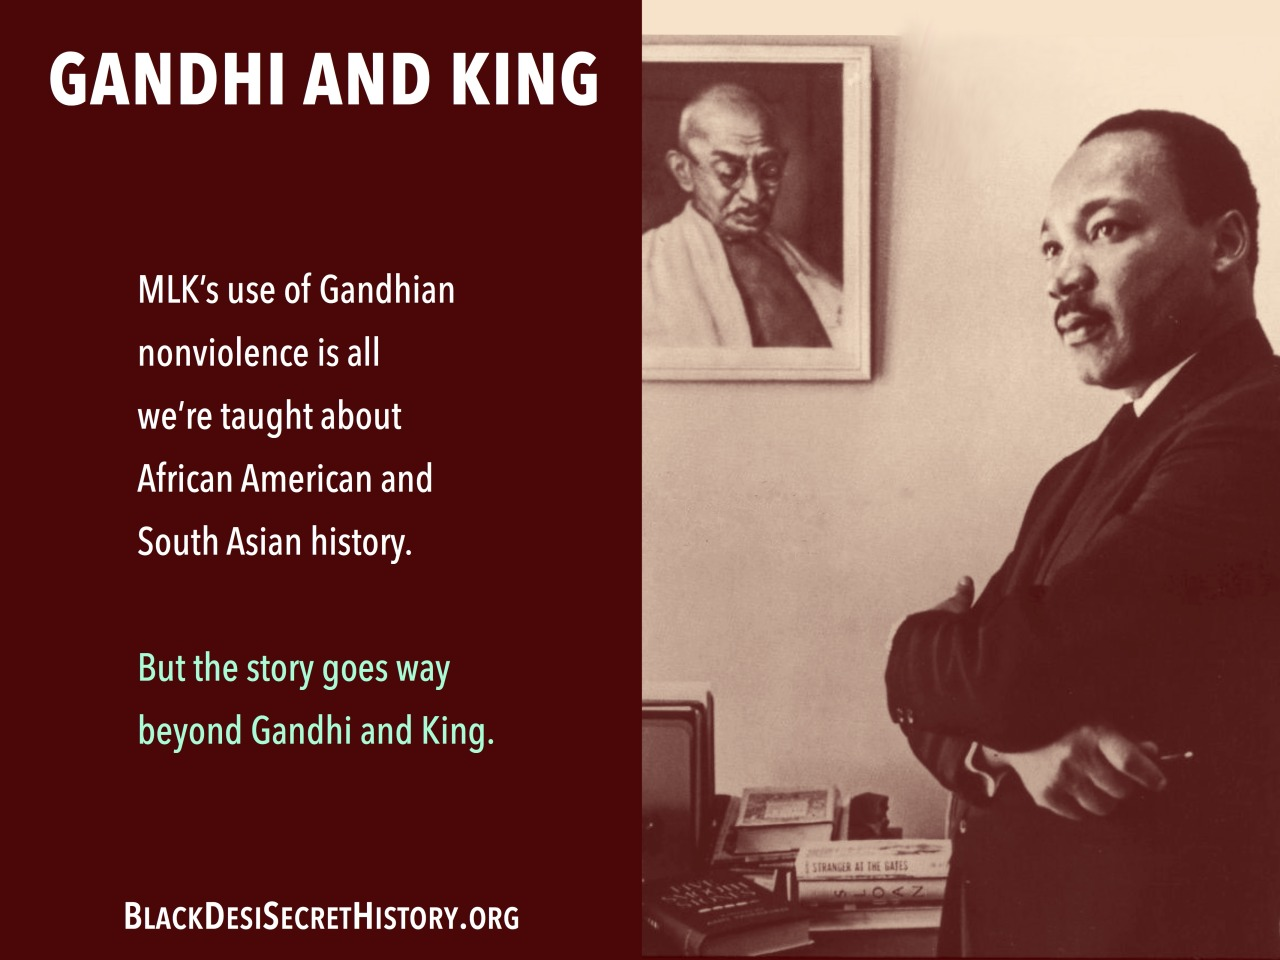 The story goes way beyond Gandhi and King